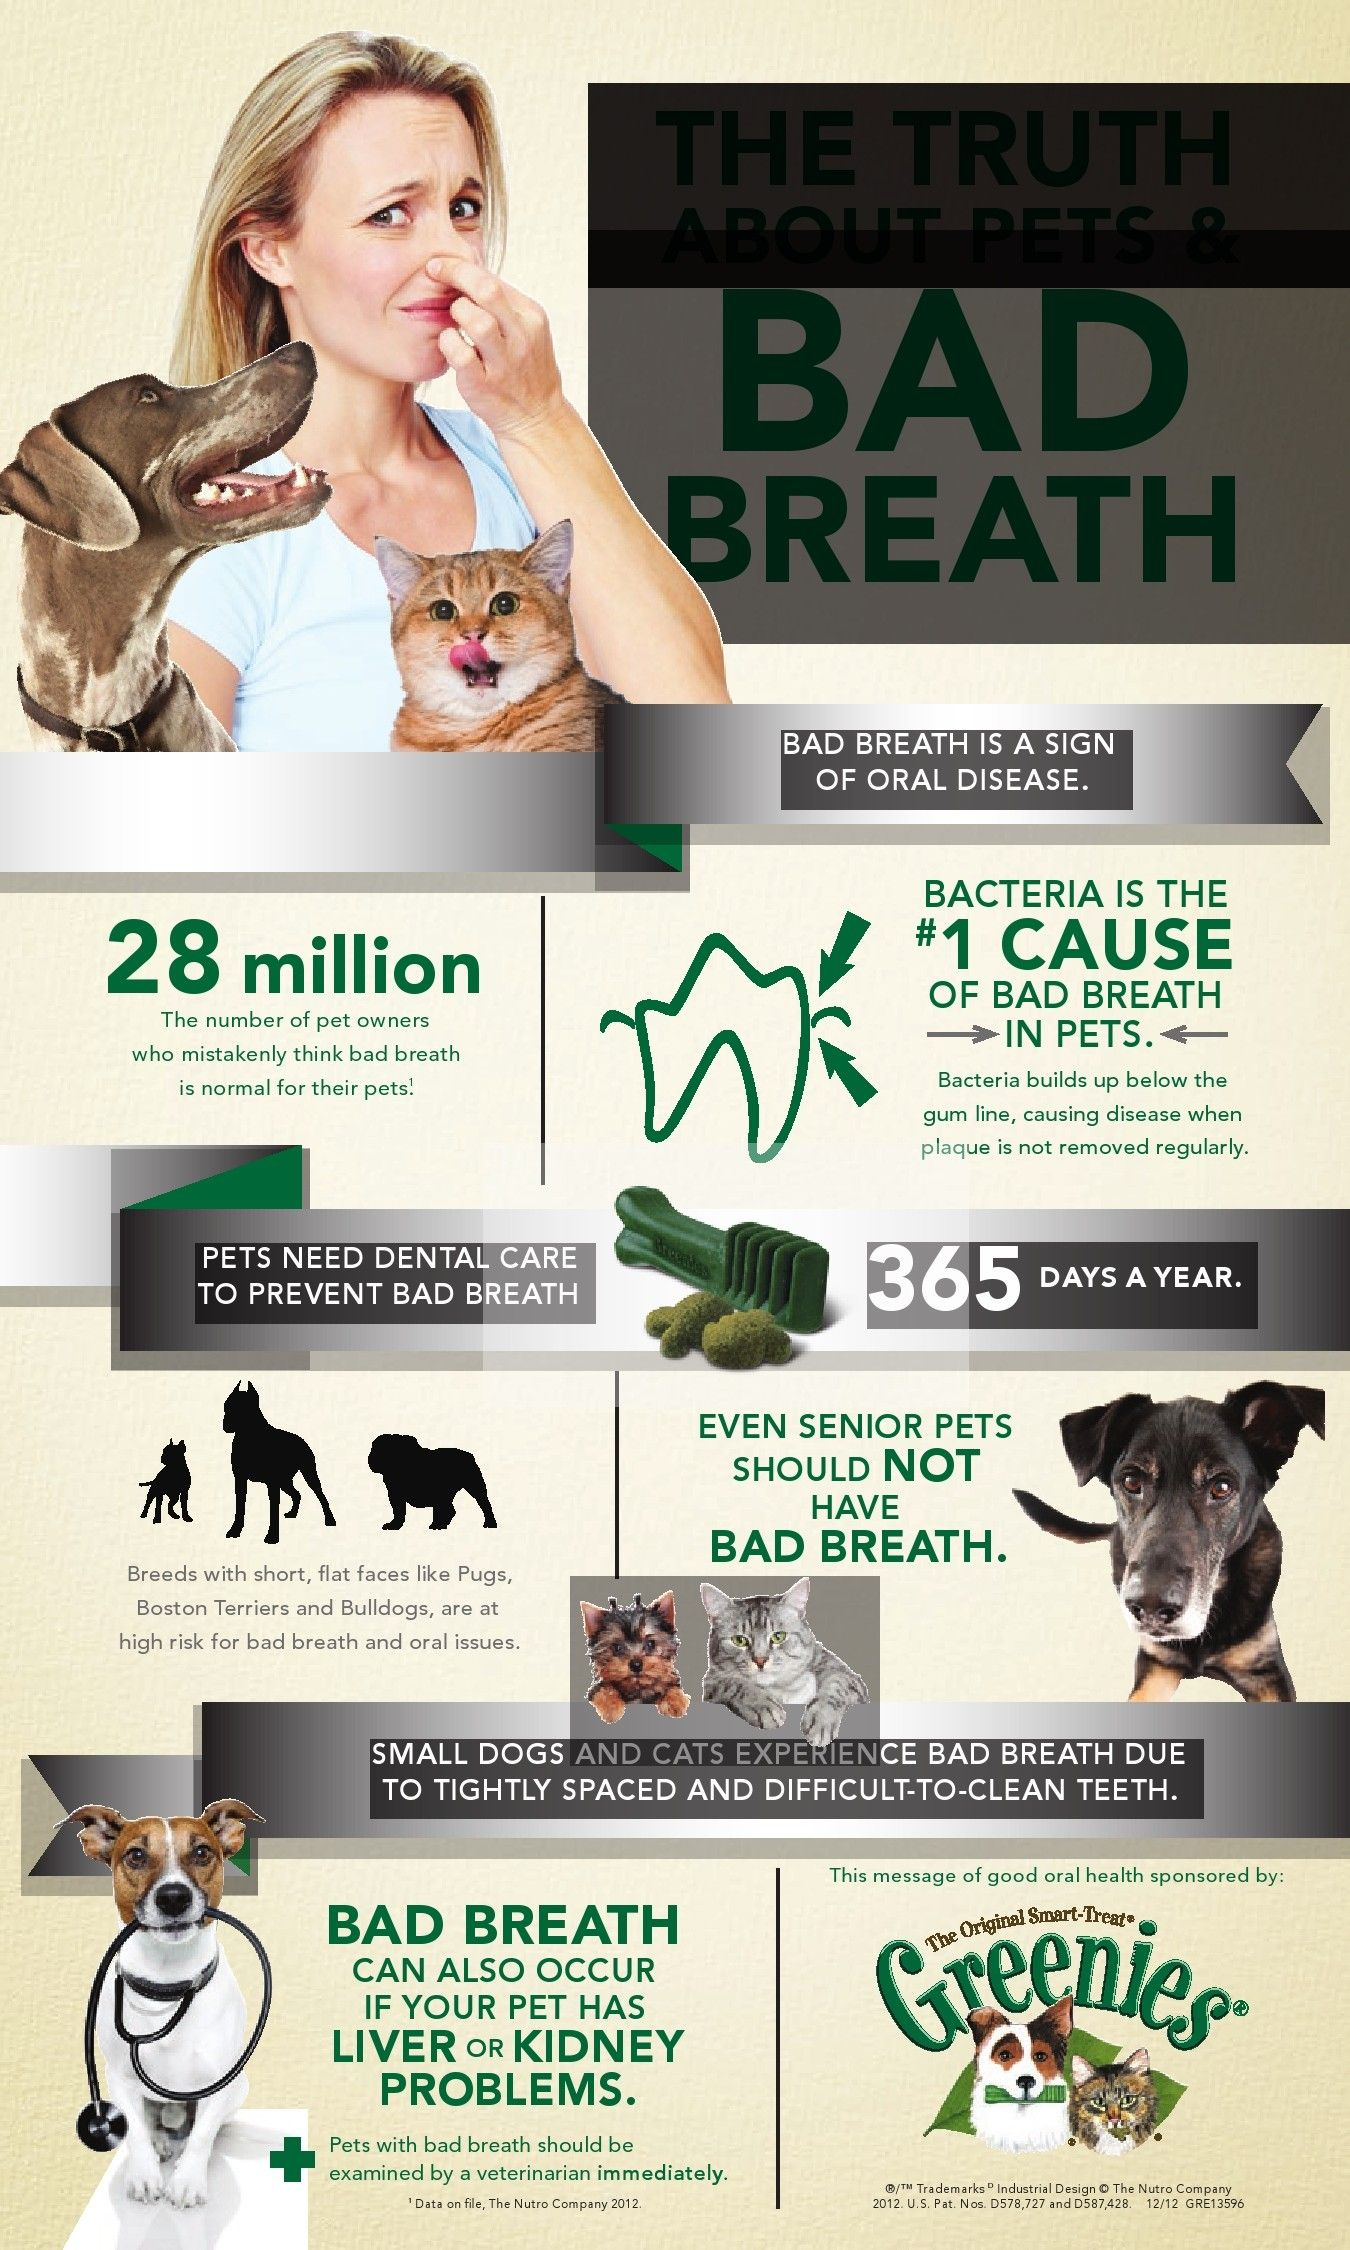 February is National Pet Dental Health Month! Bad breath